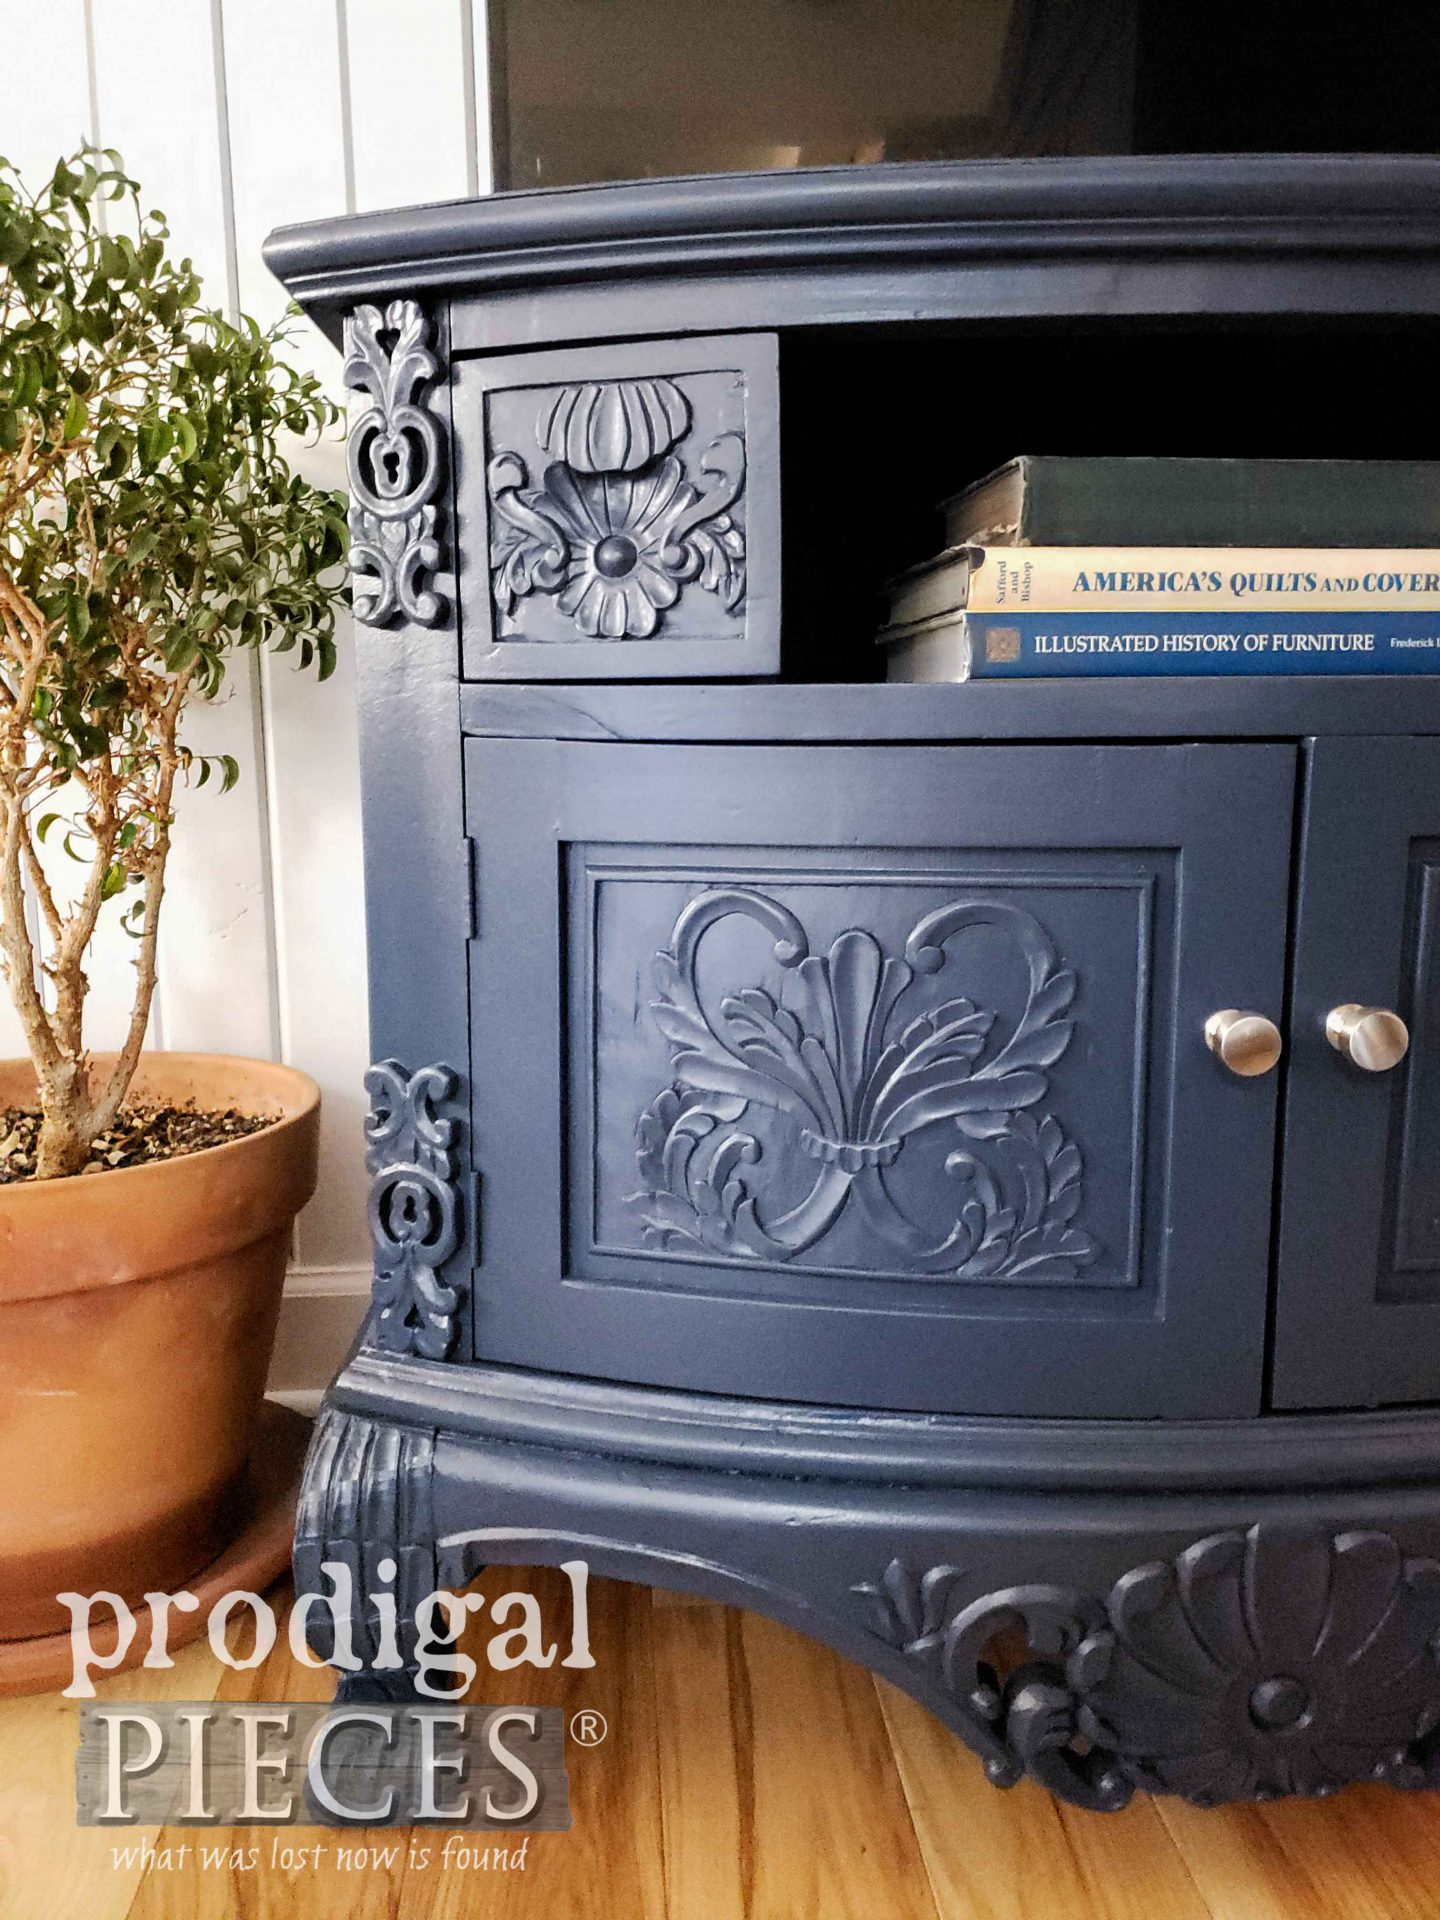 Painted Hale Navy TV Stand with Tutorial by Larissa of Prodigal Pieces | prodigalpieces.com #prodigalpieces #diy #home #homedecor #furniture #blue